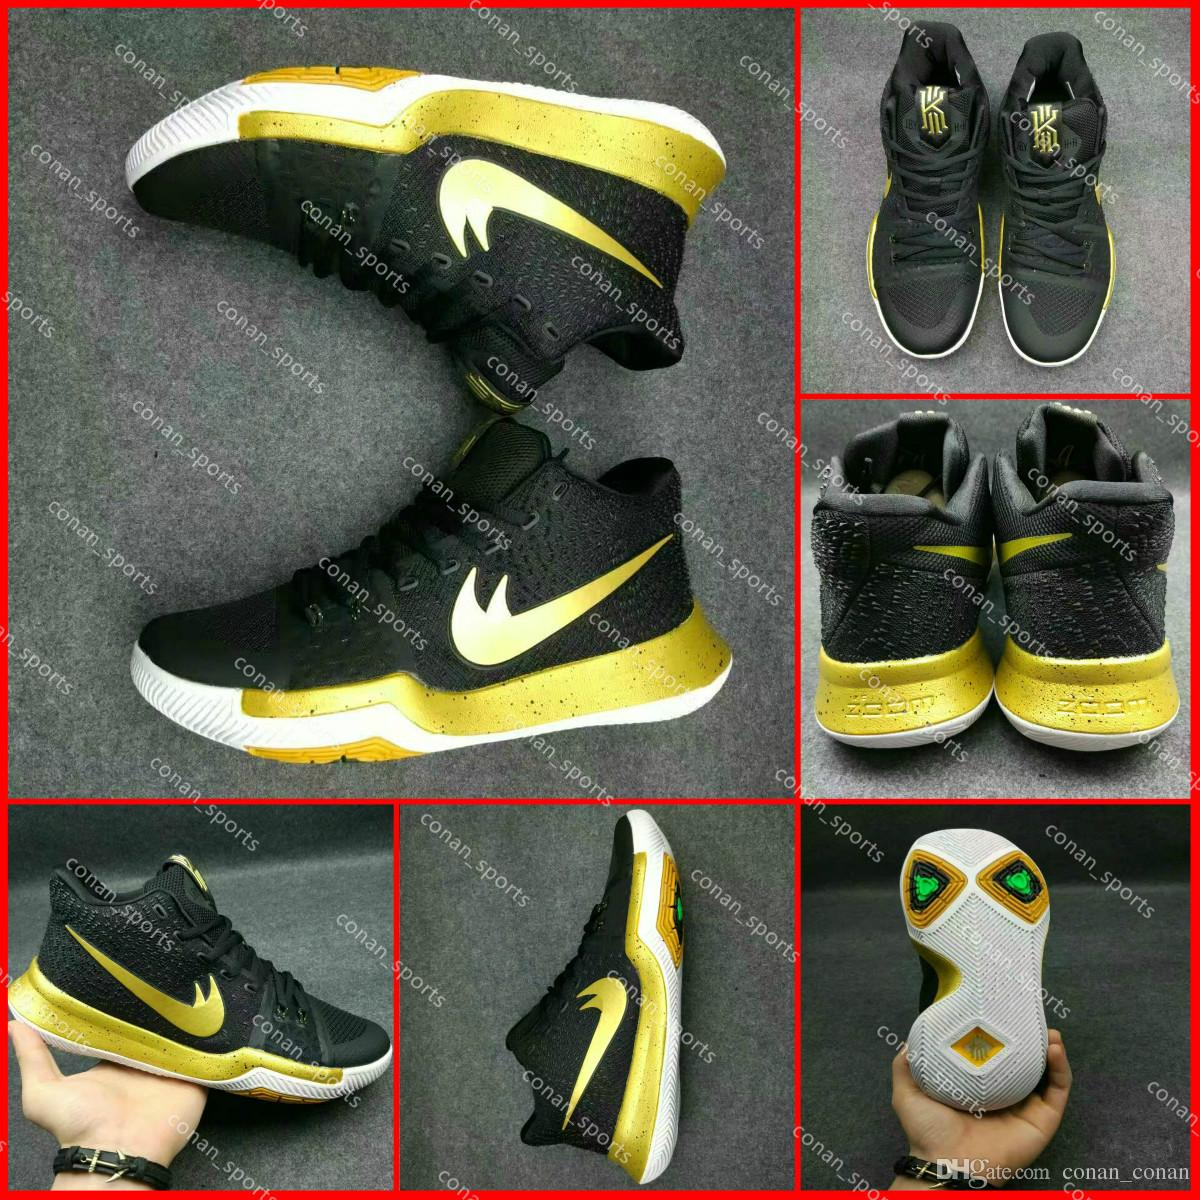 216baee192e Kyrie All Star Shoes Boys Black And Gold Kyrie Irving Shoes 4 ...